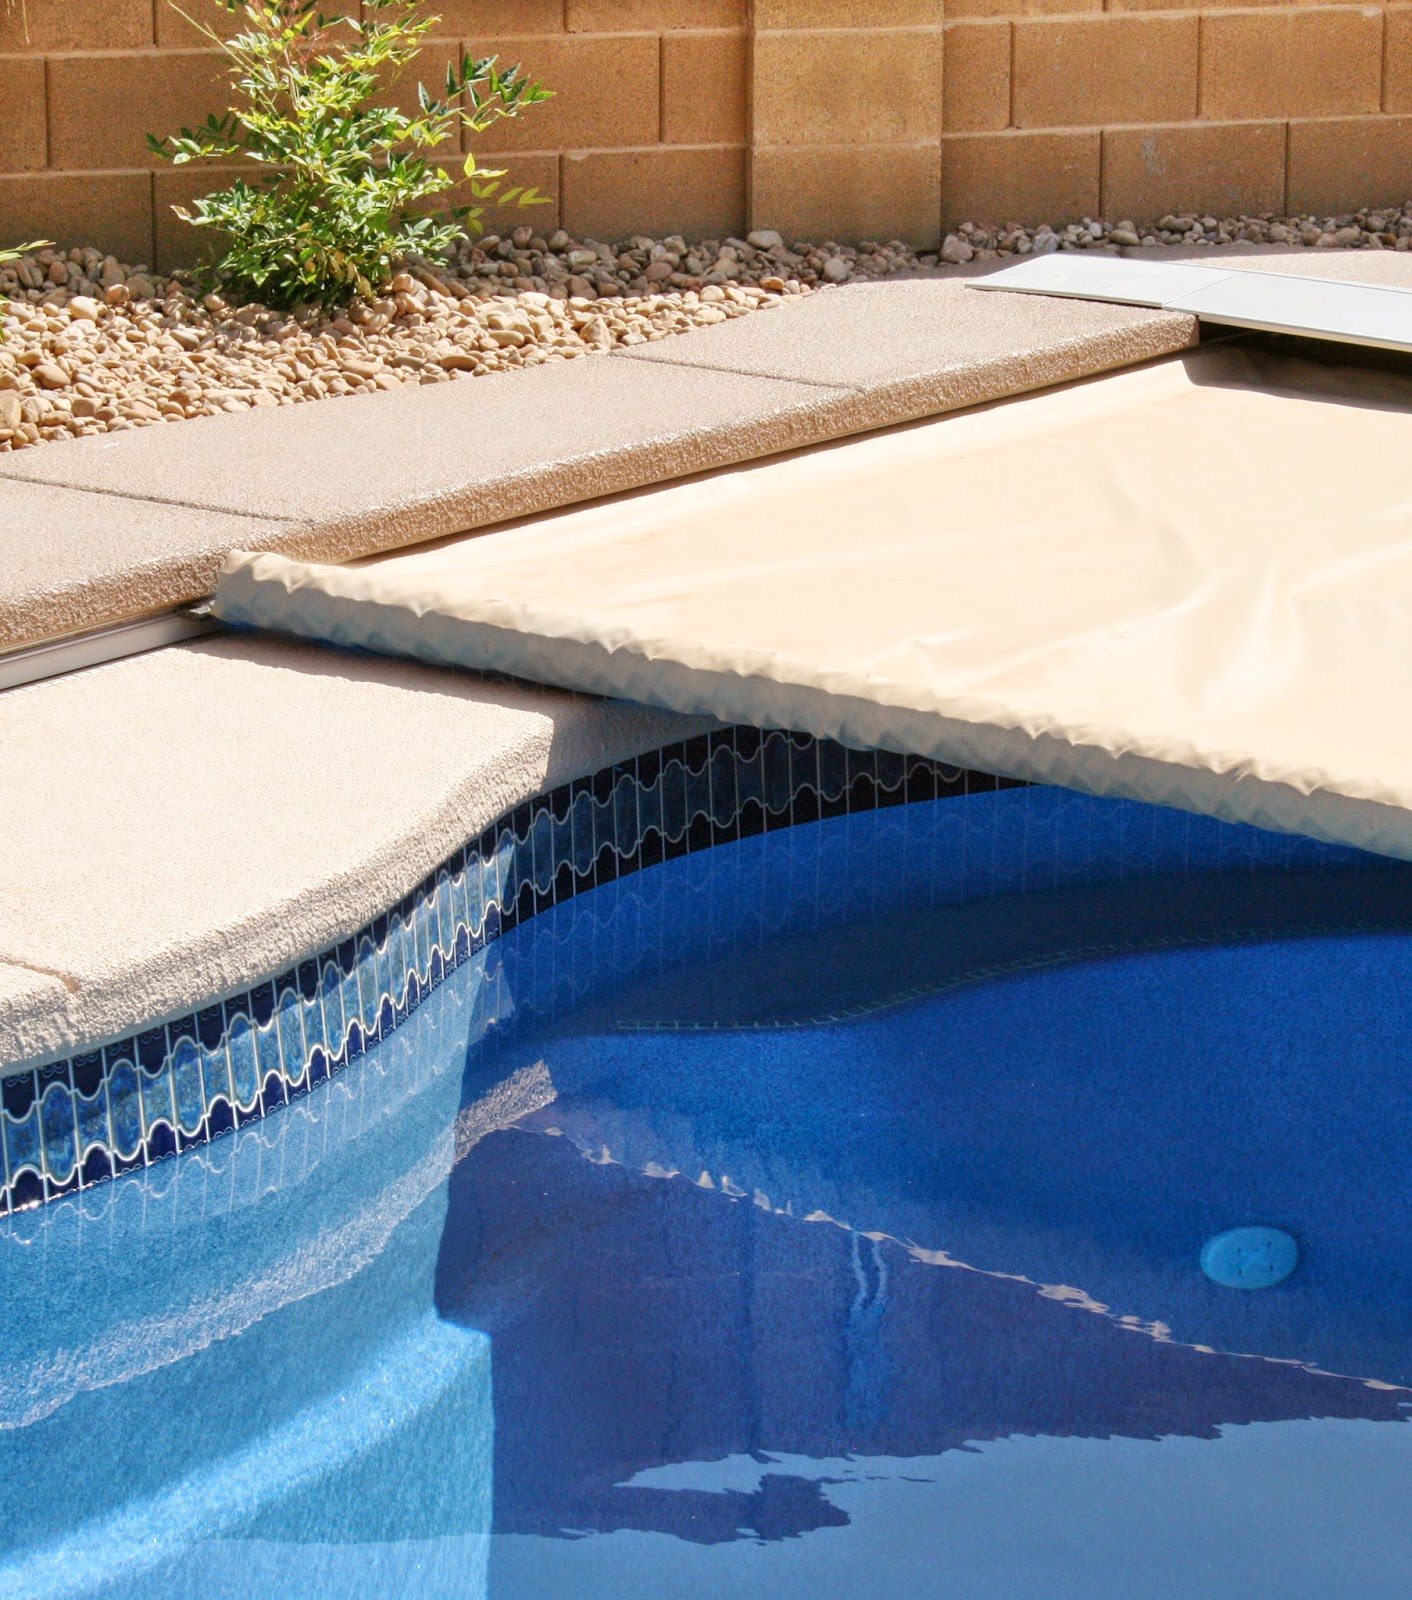 Coverstar Safety Swimming Pool Covers For Automatic And Solid Mesh What Are The Benefits Of